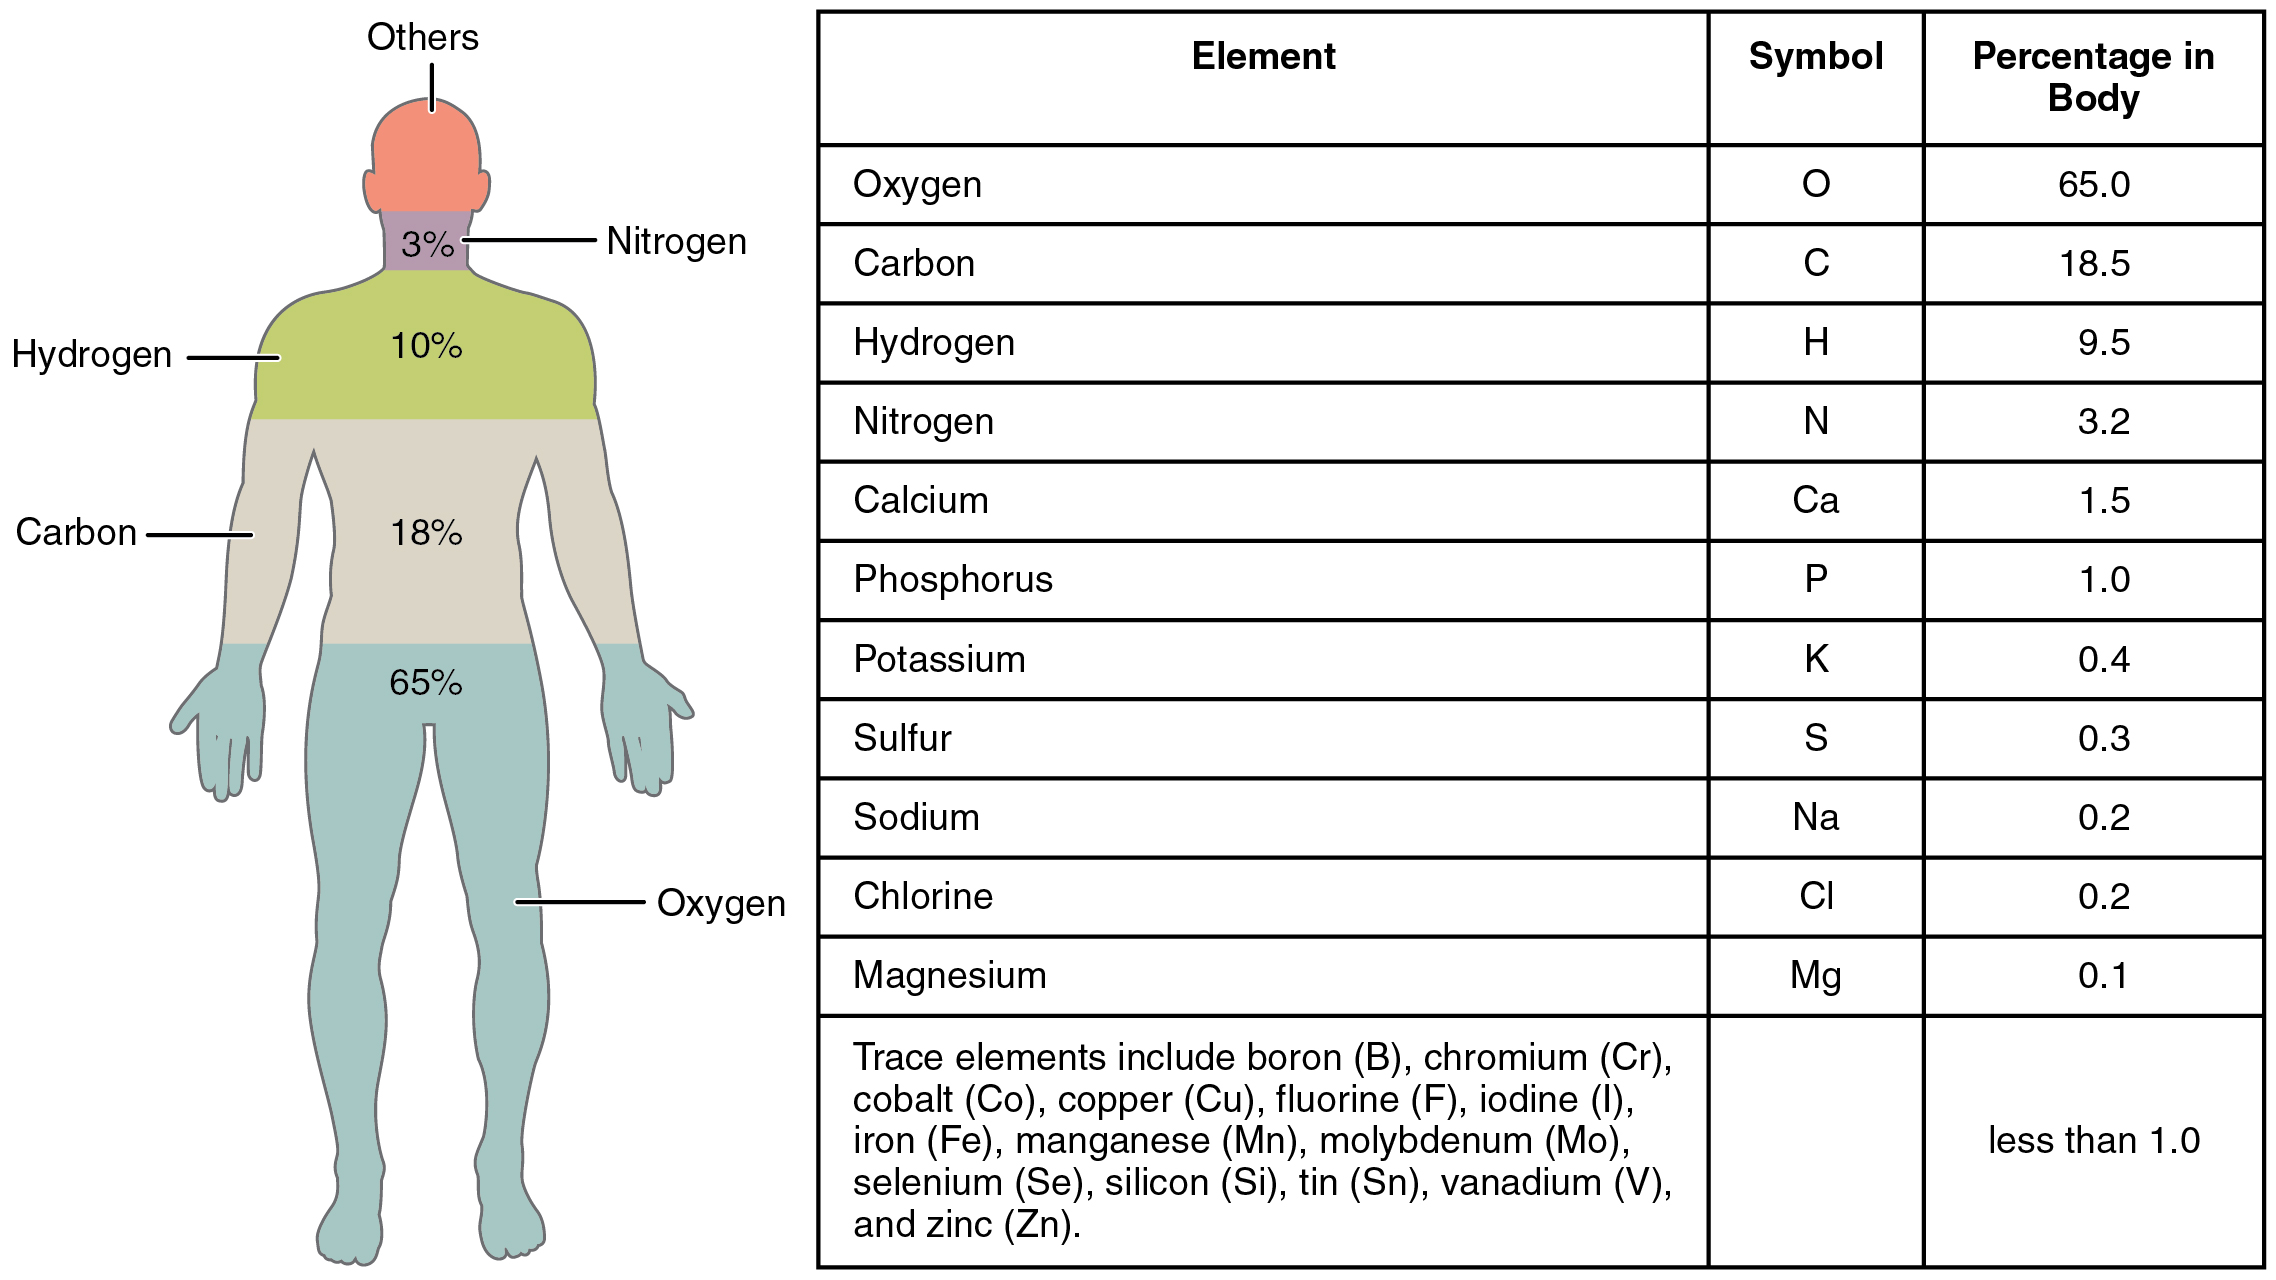 201_Elements_of_the_Human_Body-01.jpg